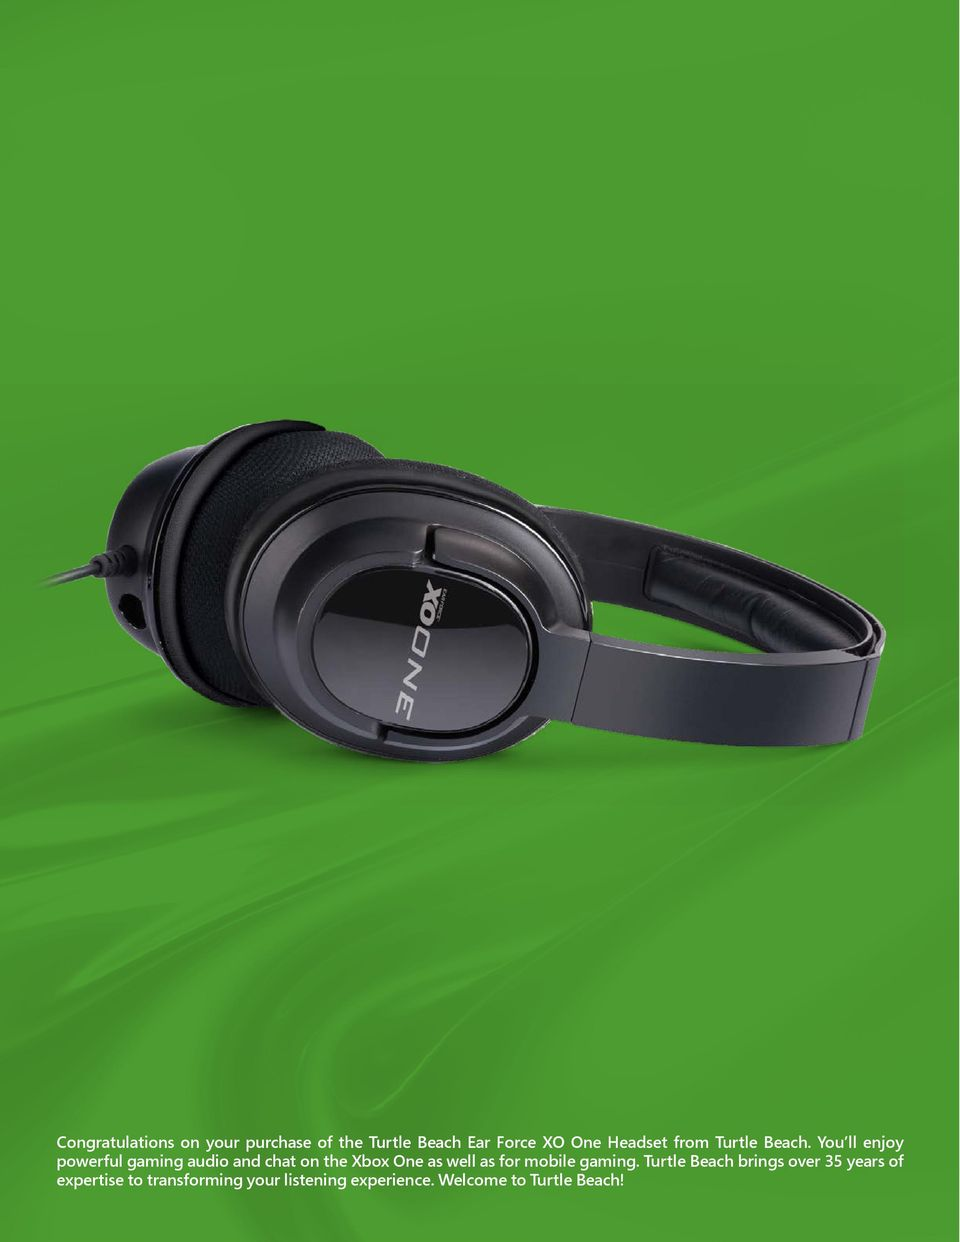 You ll enjoy powerful gaming audio and chat on the Xbox One as well as for